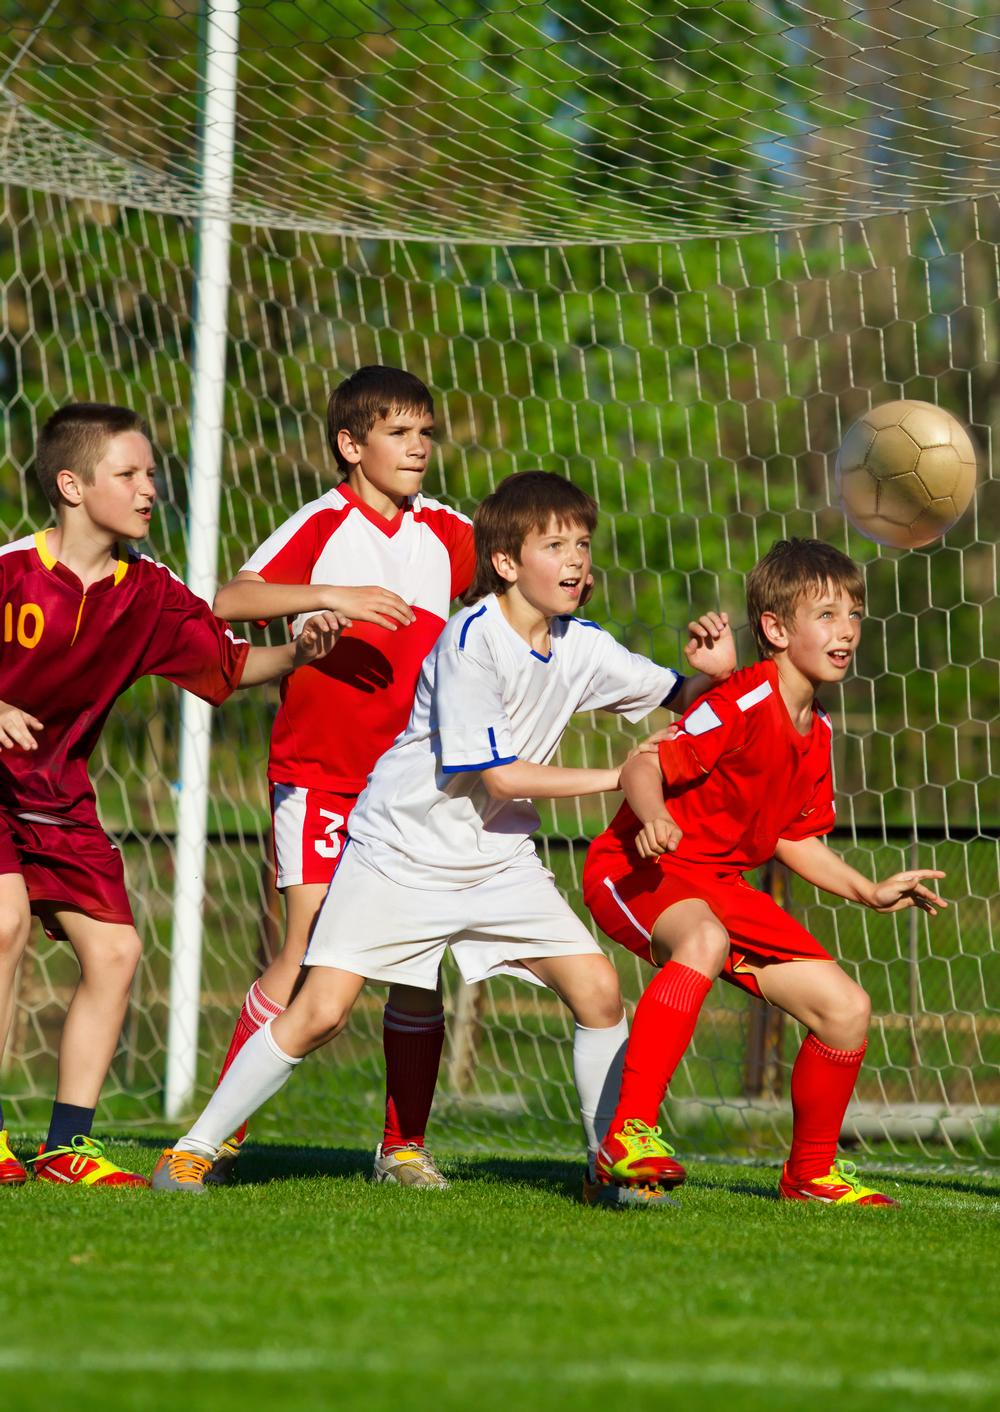 If you want to encourage participation in sport, children need to be able to play. / shutterstock / Wallenrock